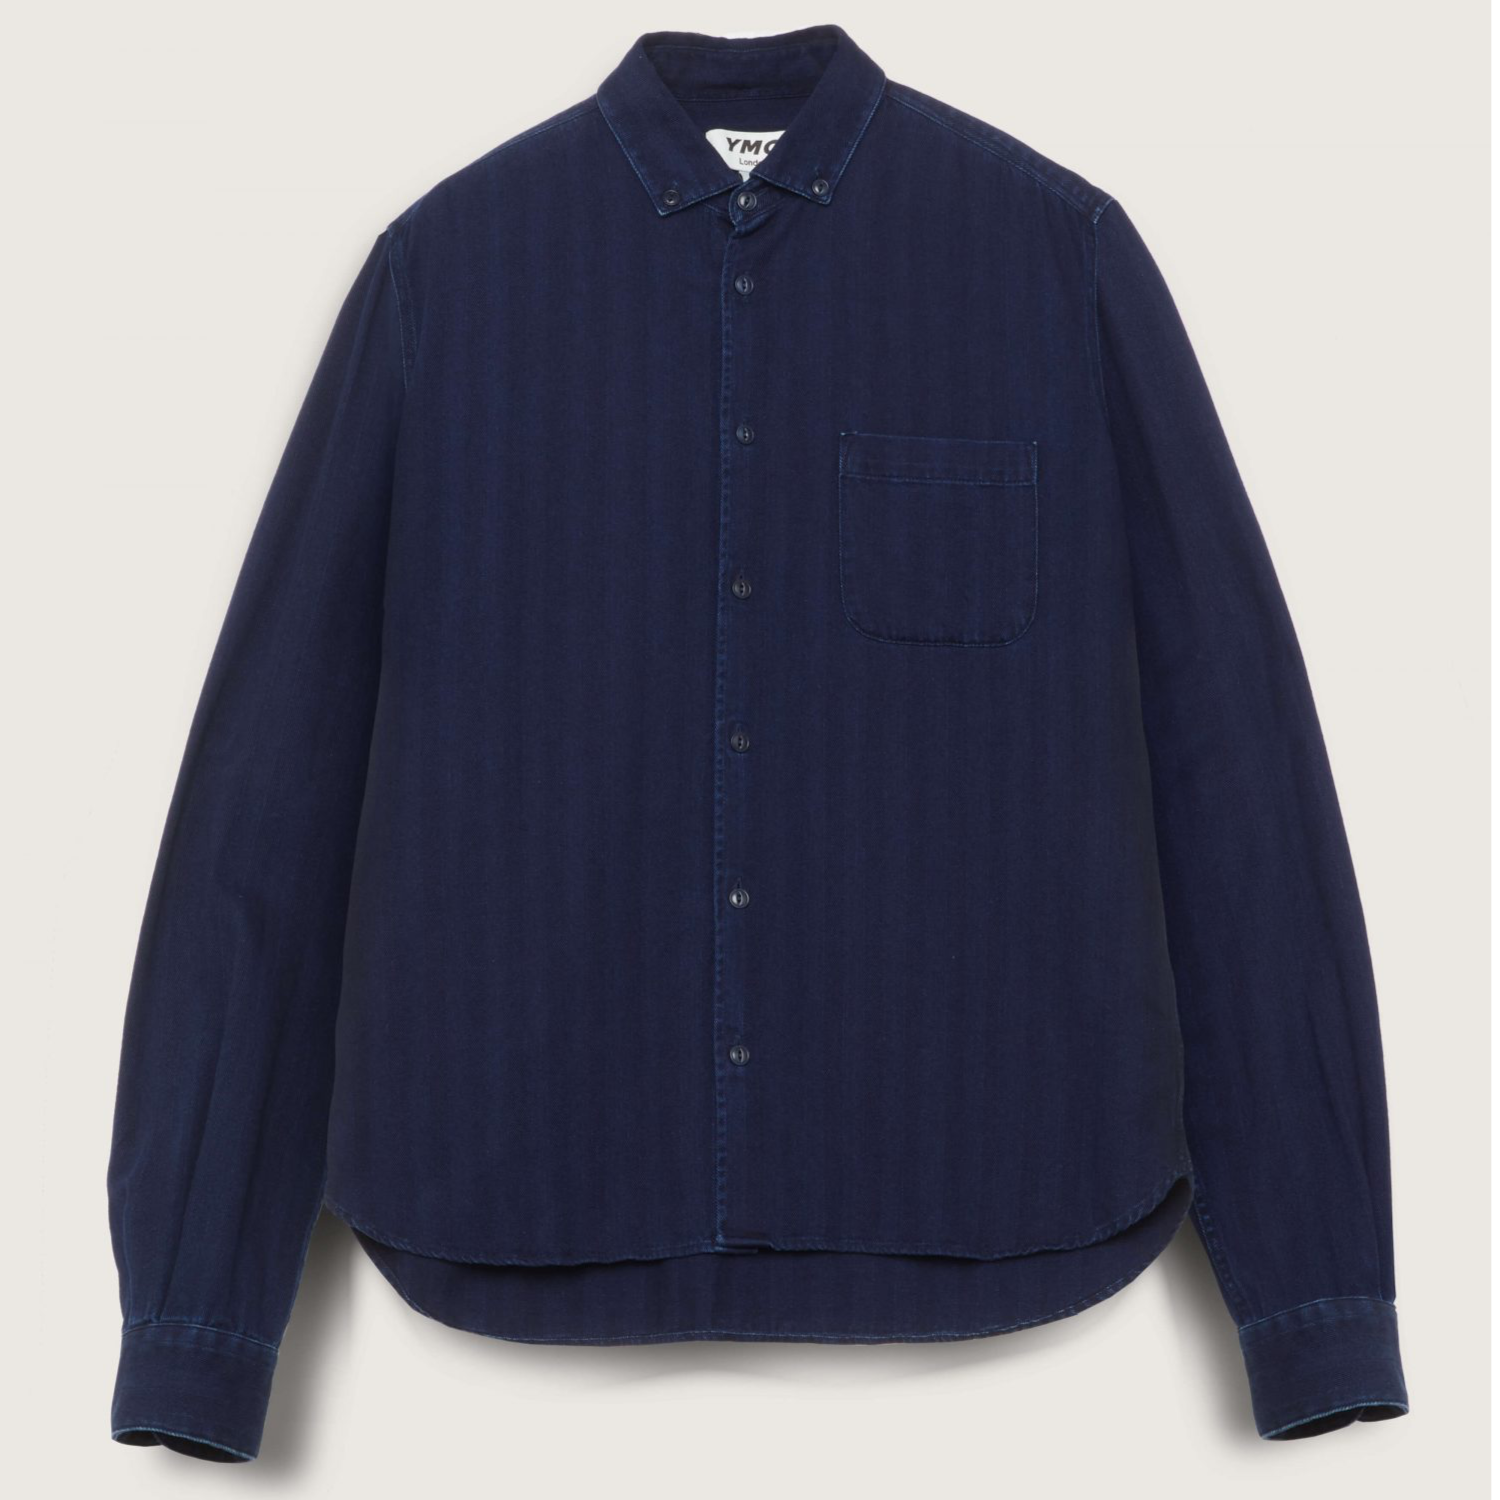 Ymc Dean Cotton Herringbone Shirt - Indigo